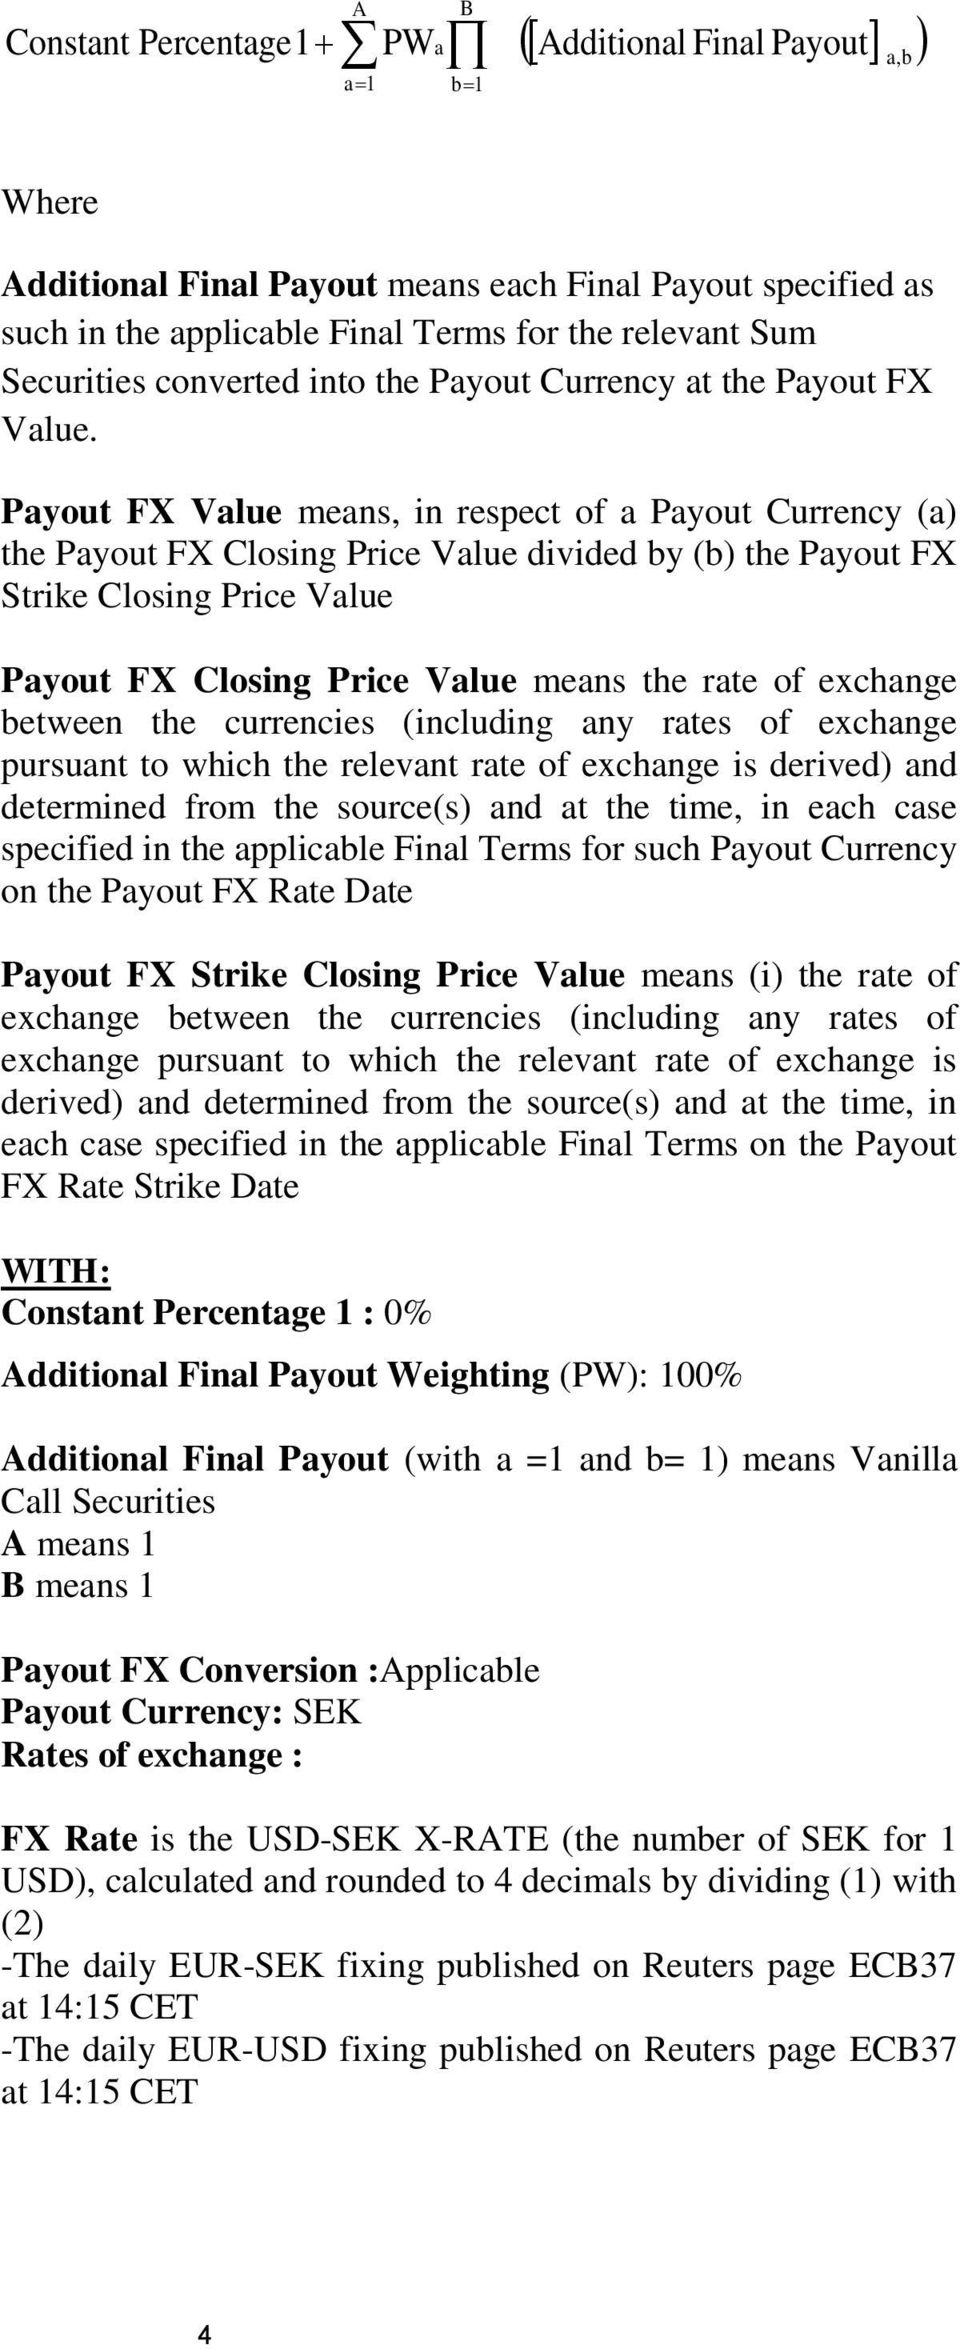 Payout FX Value means, in respect of a Payout Currency (a) the Payout FX Closing Price Value divided by (b) the Payout FX Strike Closing Price Value Payout FX Closing Price Value means the rate of